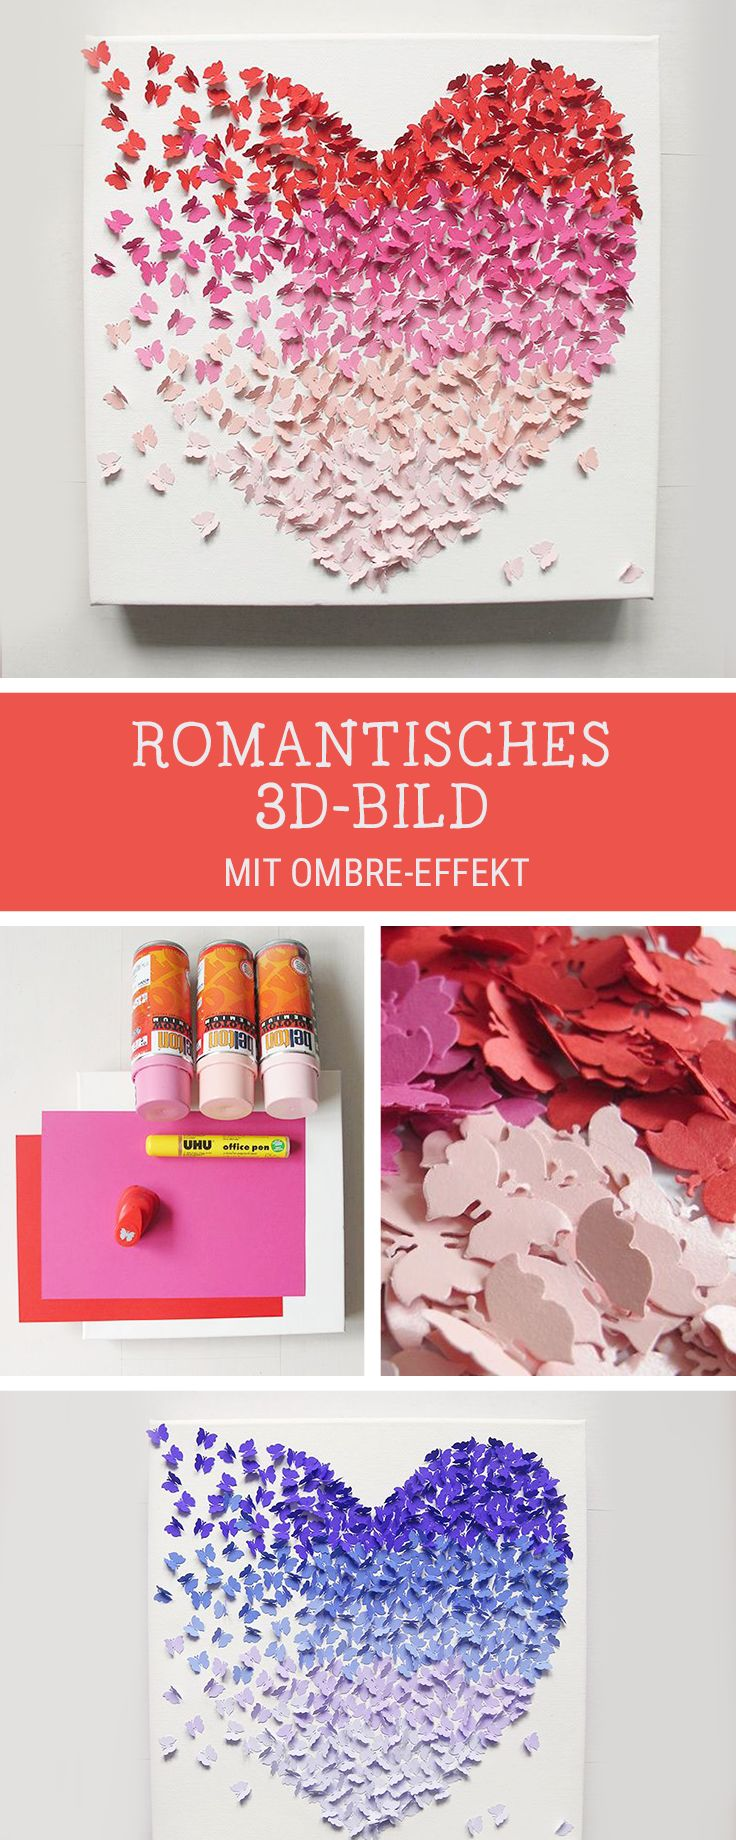 Romantisches 3D-Bild selbermachen, Ombre Effekt, Herz / diy crafting idea: romantic picture with ombre butterflies via DaWanda.com